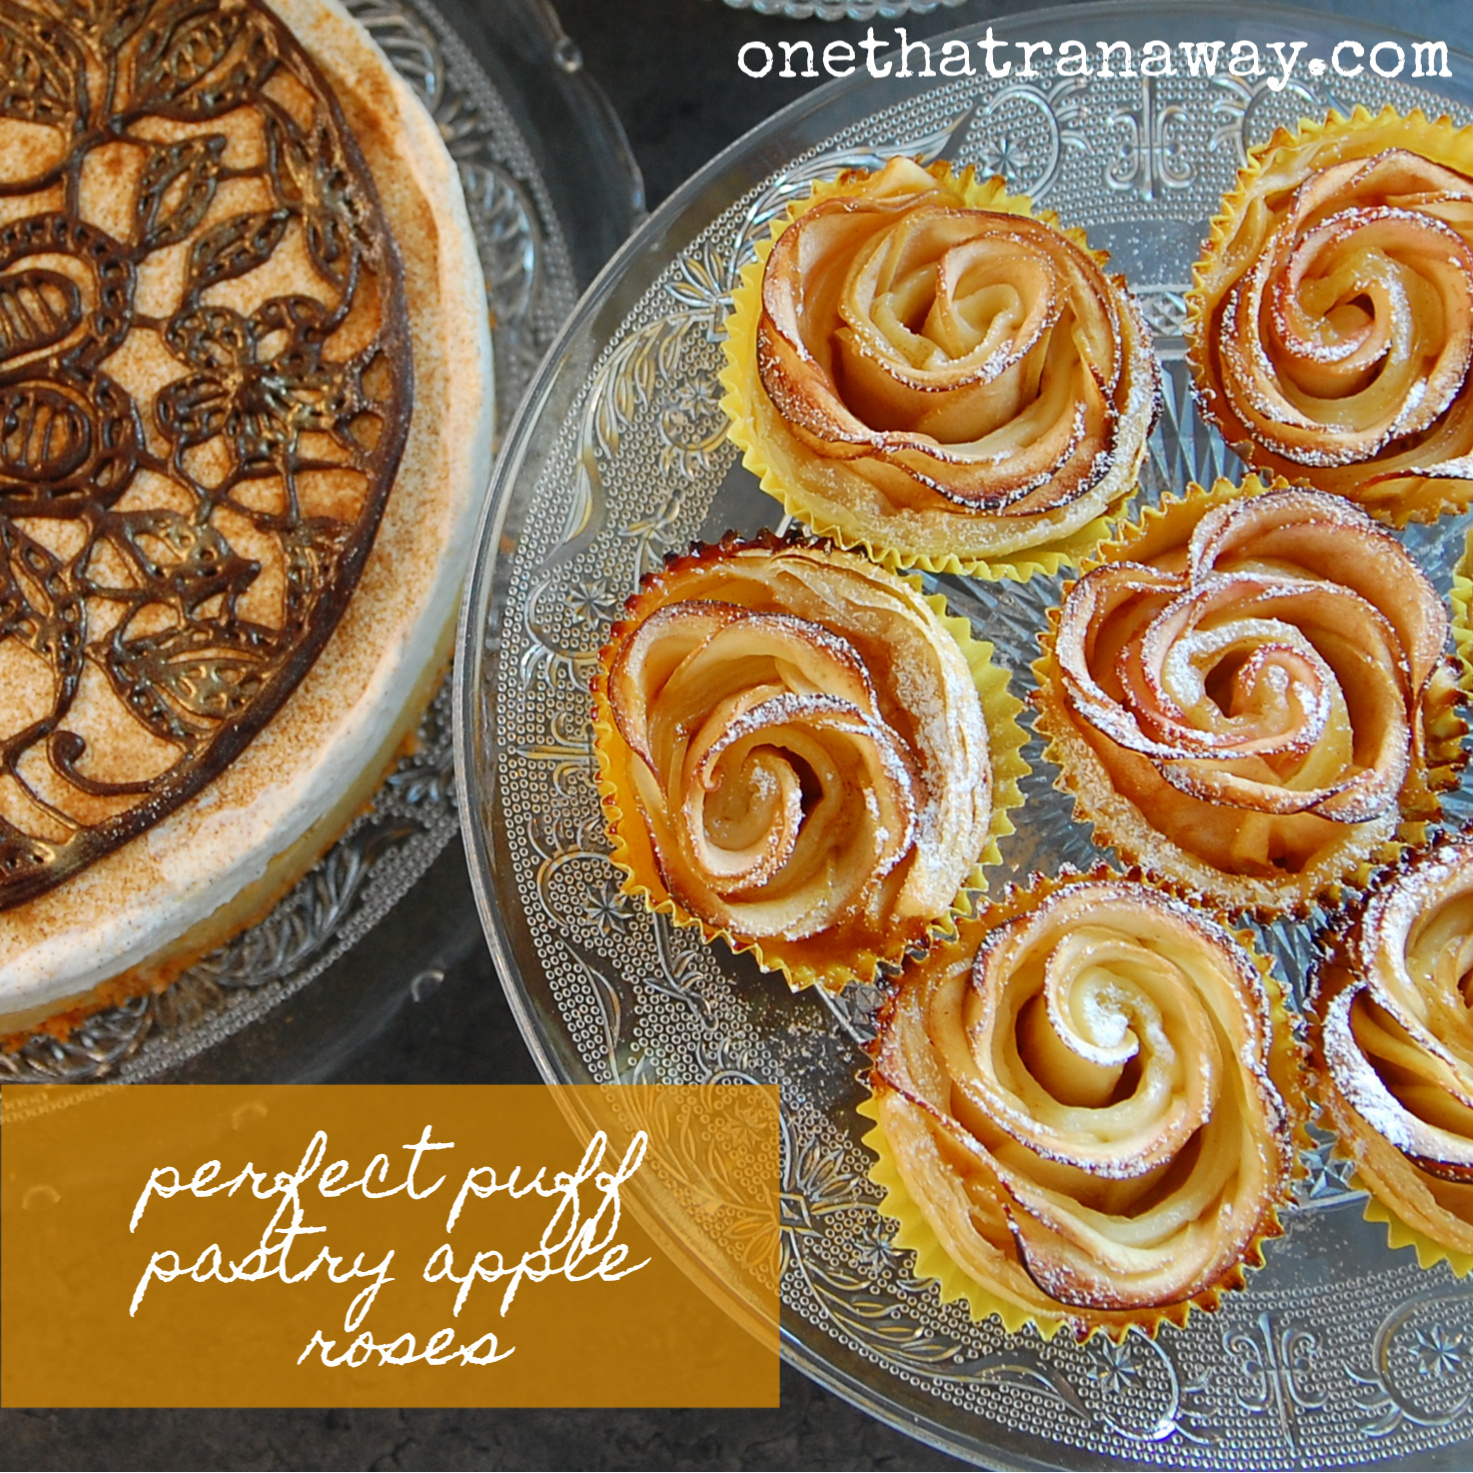 cake and puff pastry apple roses